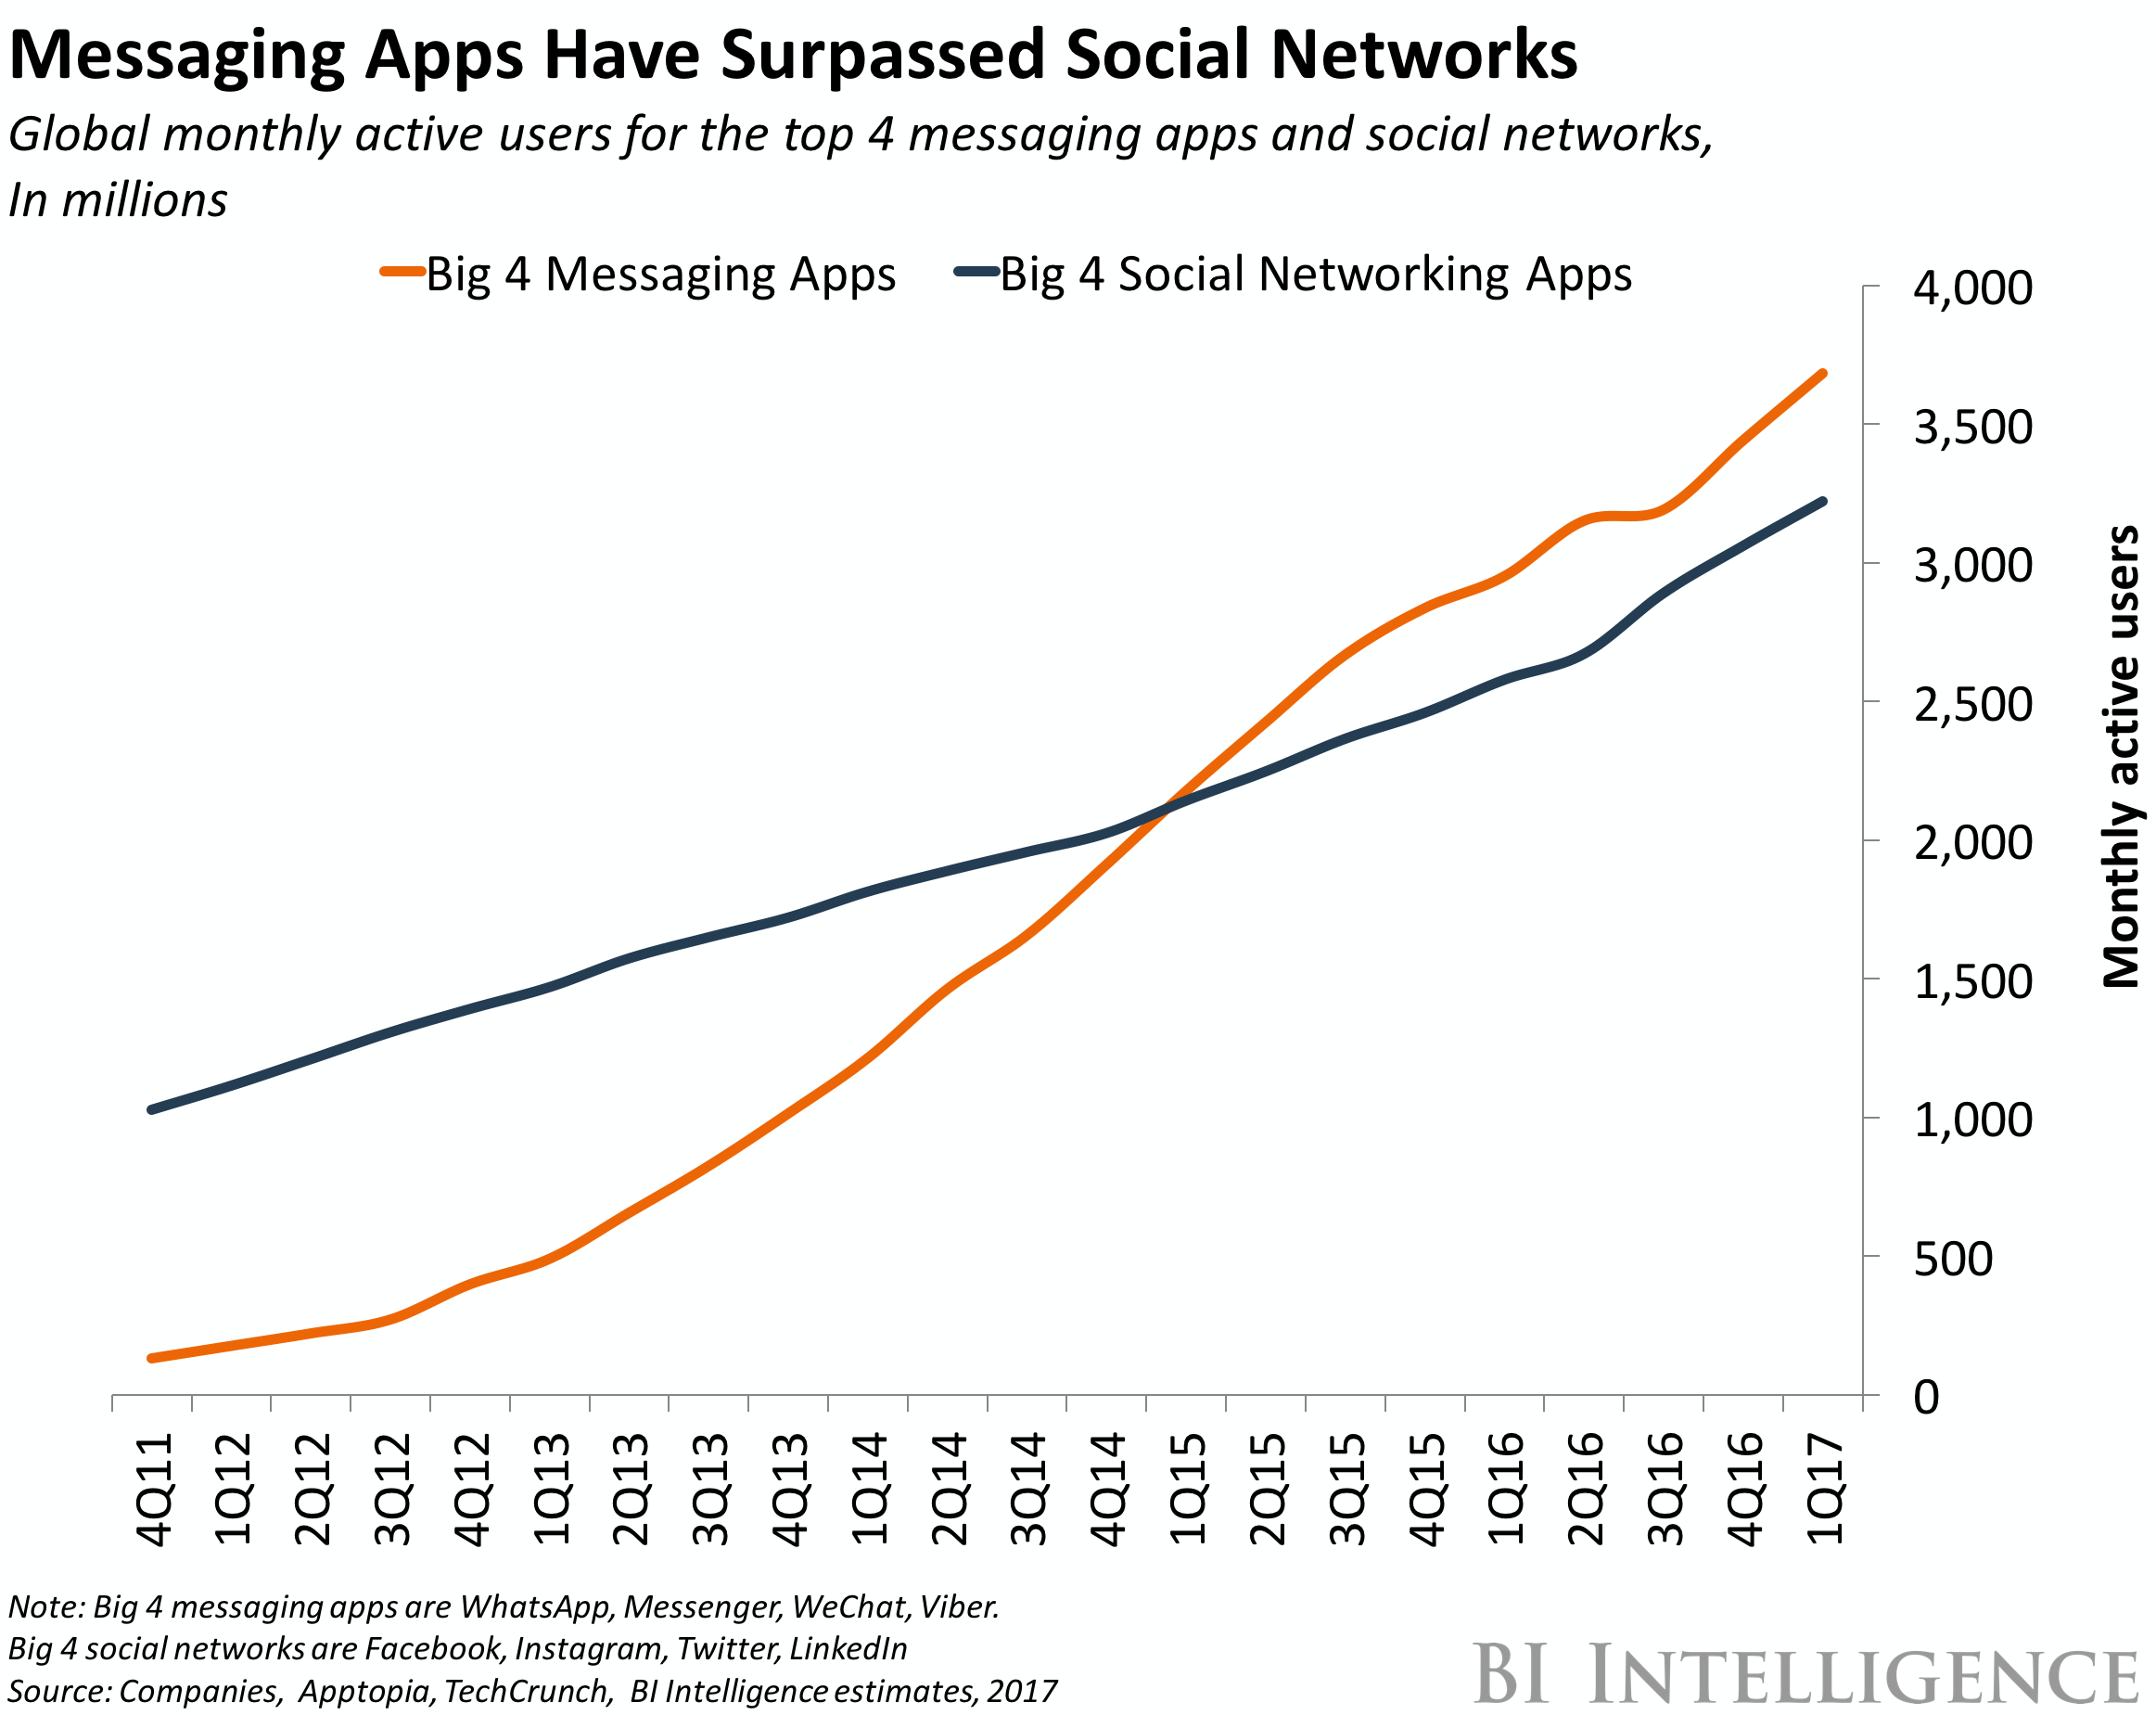 Charts showing active users of messaging apps versus social apps